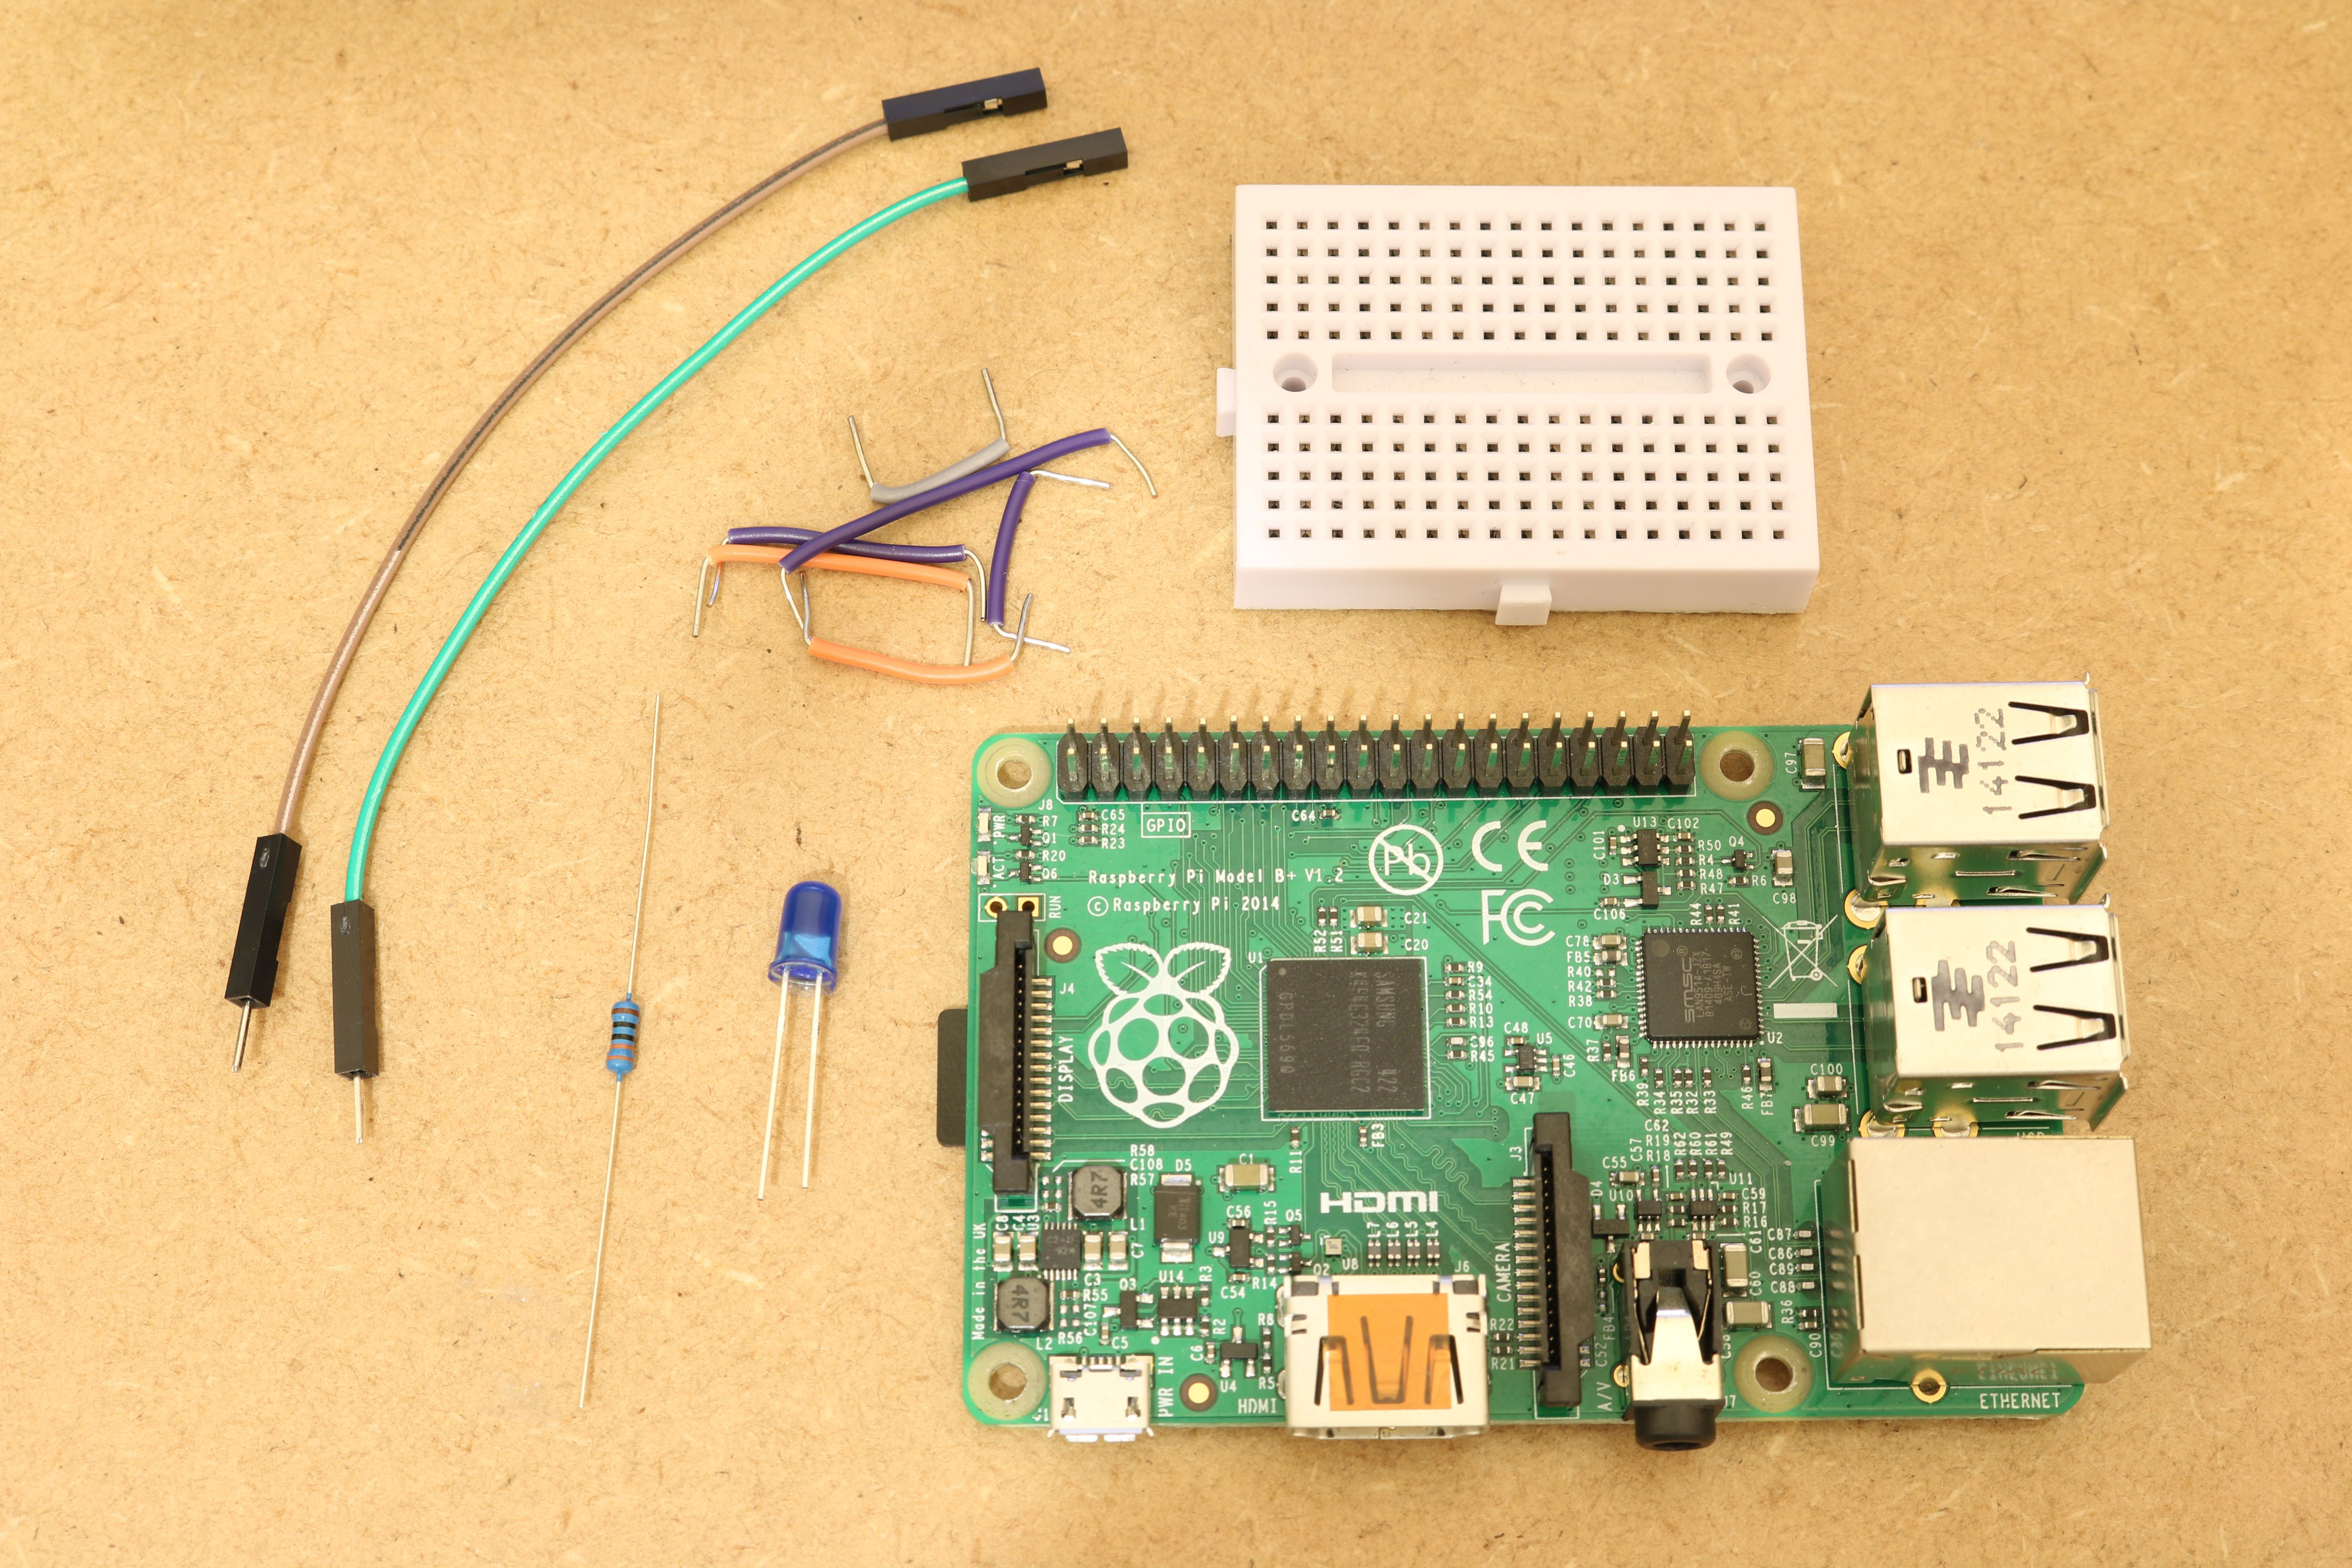 How To Use Raspberry Pis Row Of Gpio Pins On The Board Led Running Lights Electronics Project Parts Required For